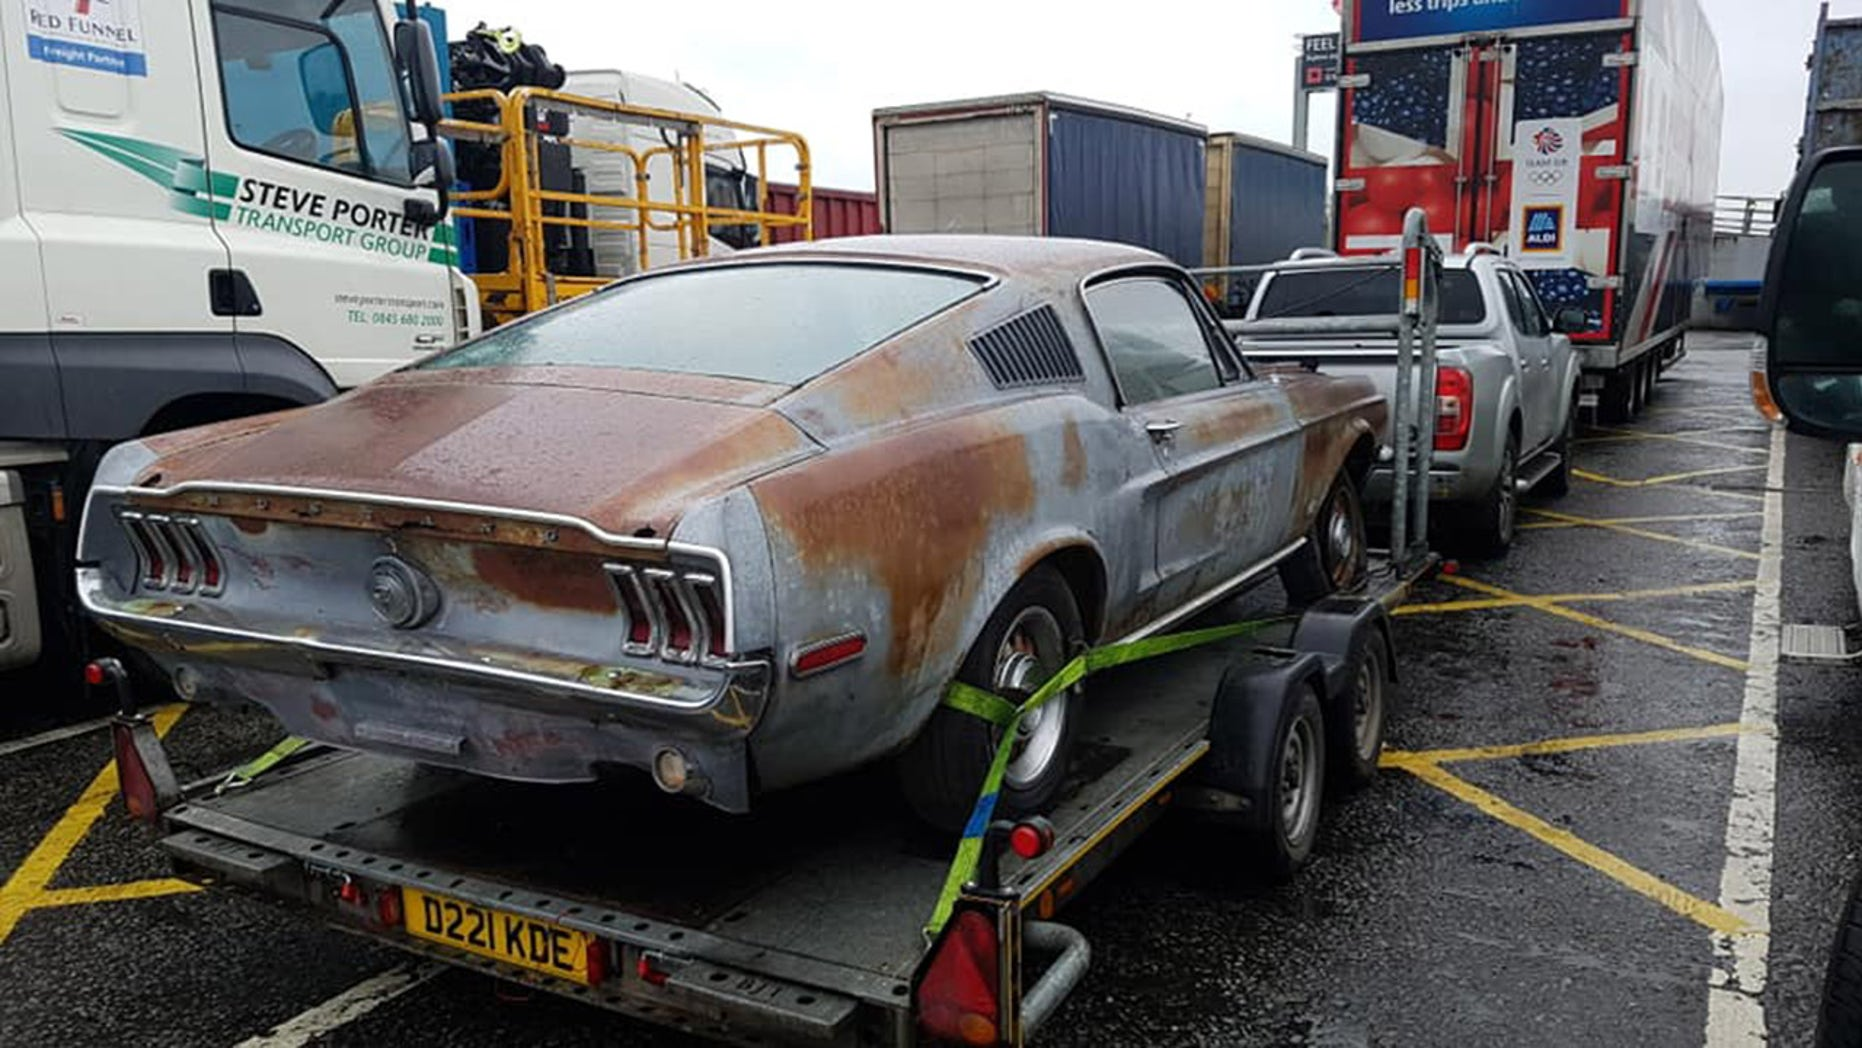 1968 Ford Mustang With Previous Owner's Ashes Inside